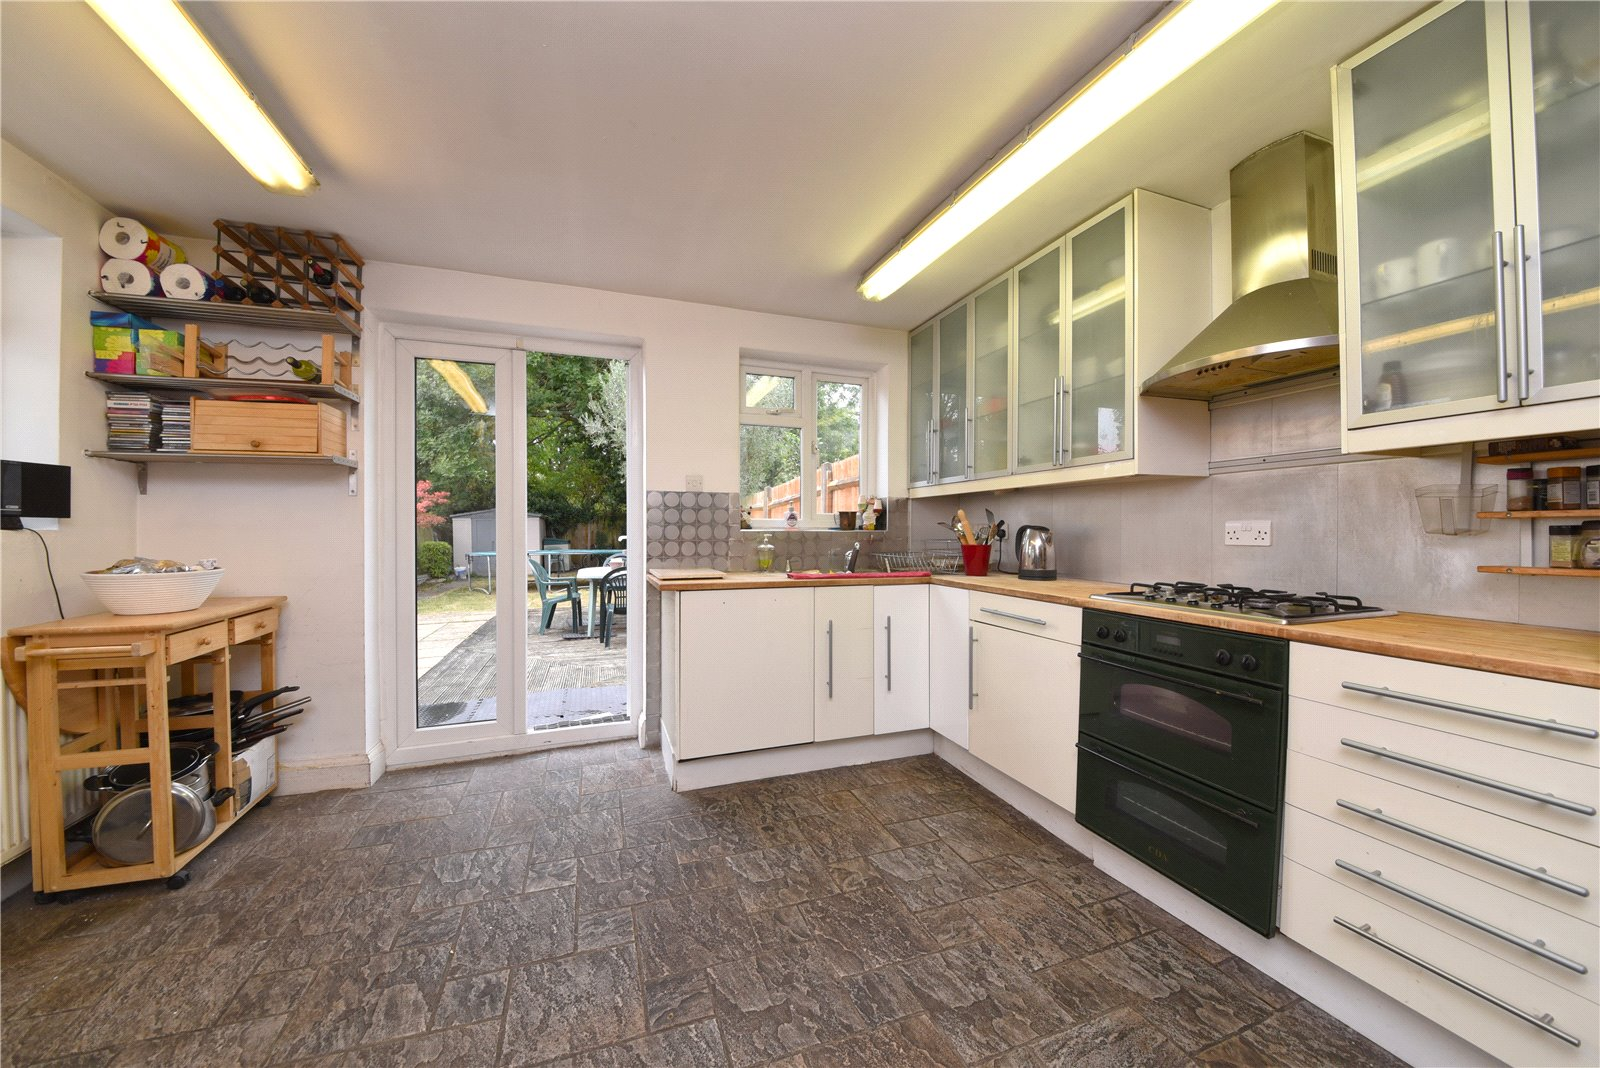 4 bed house for sale in Mill Hill East, NW7 1ND, NW7